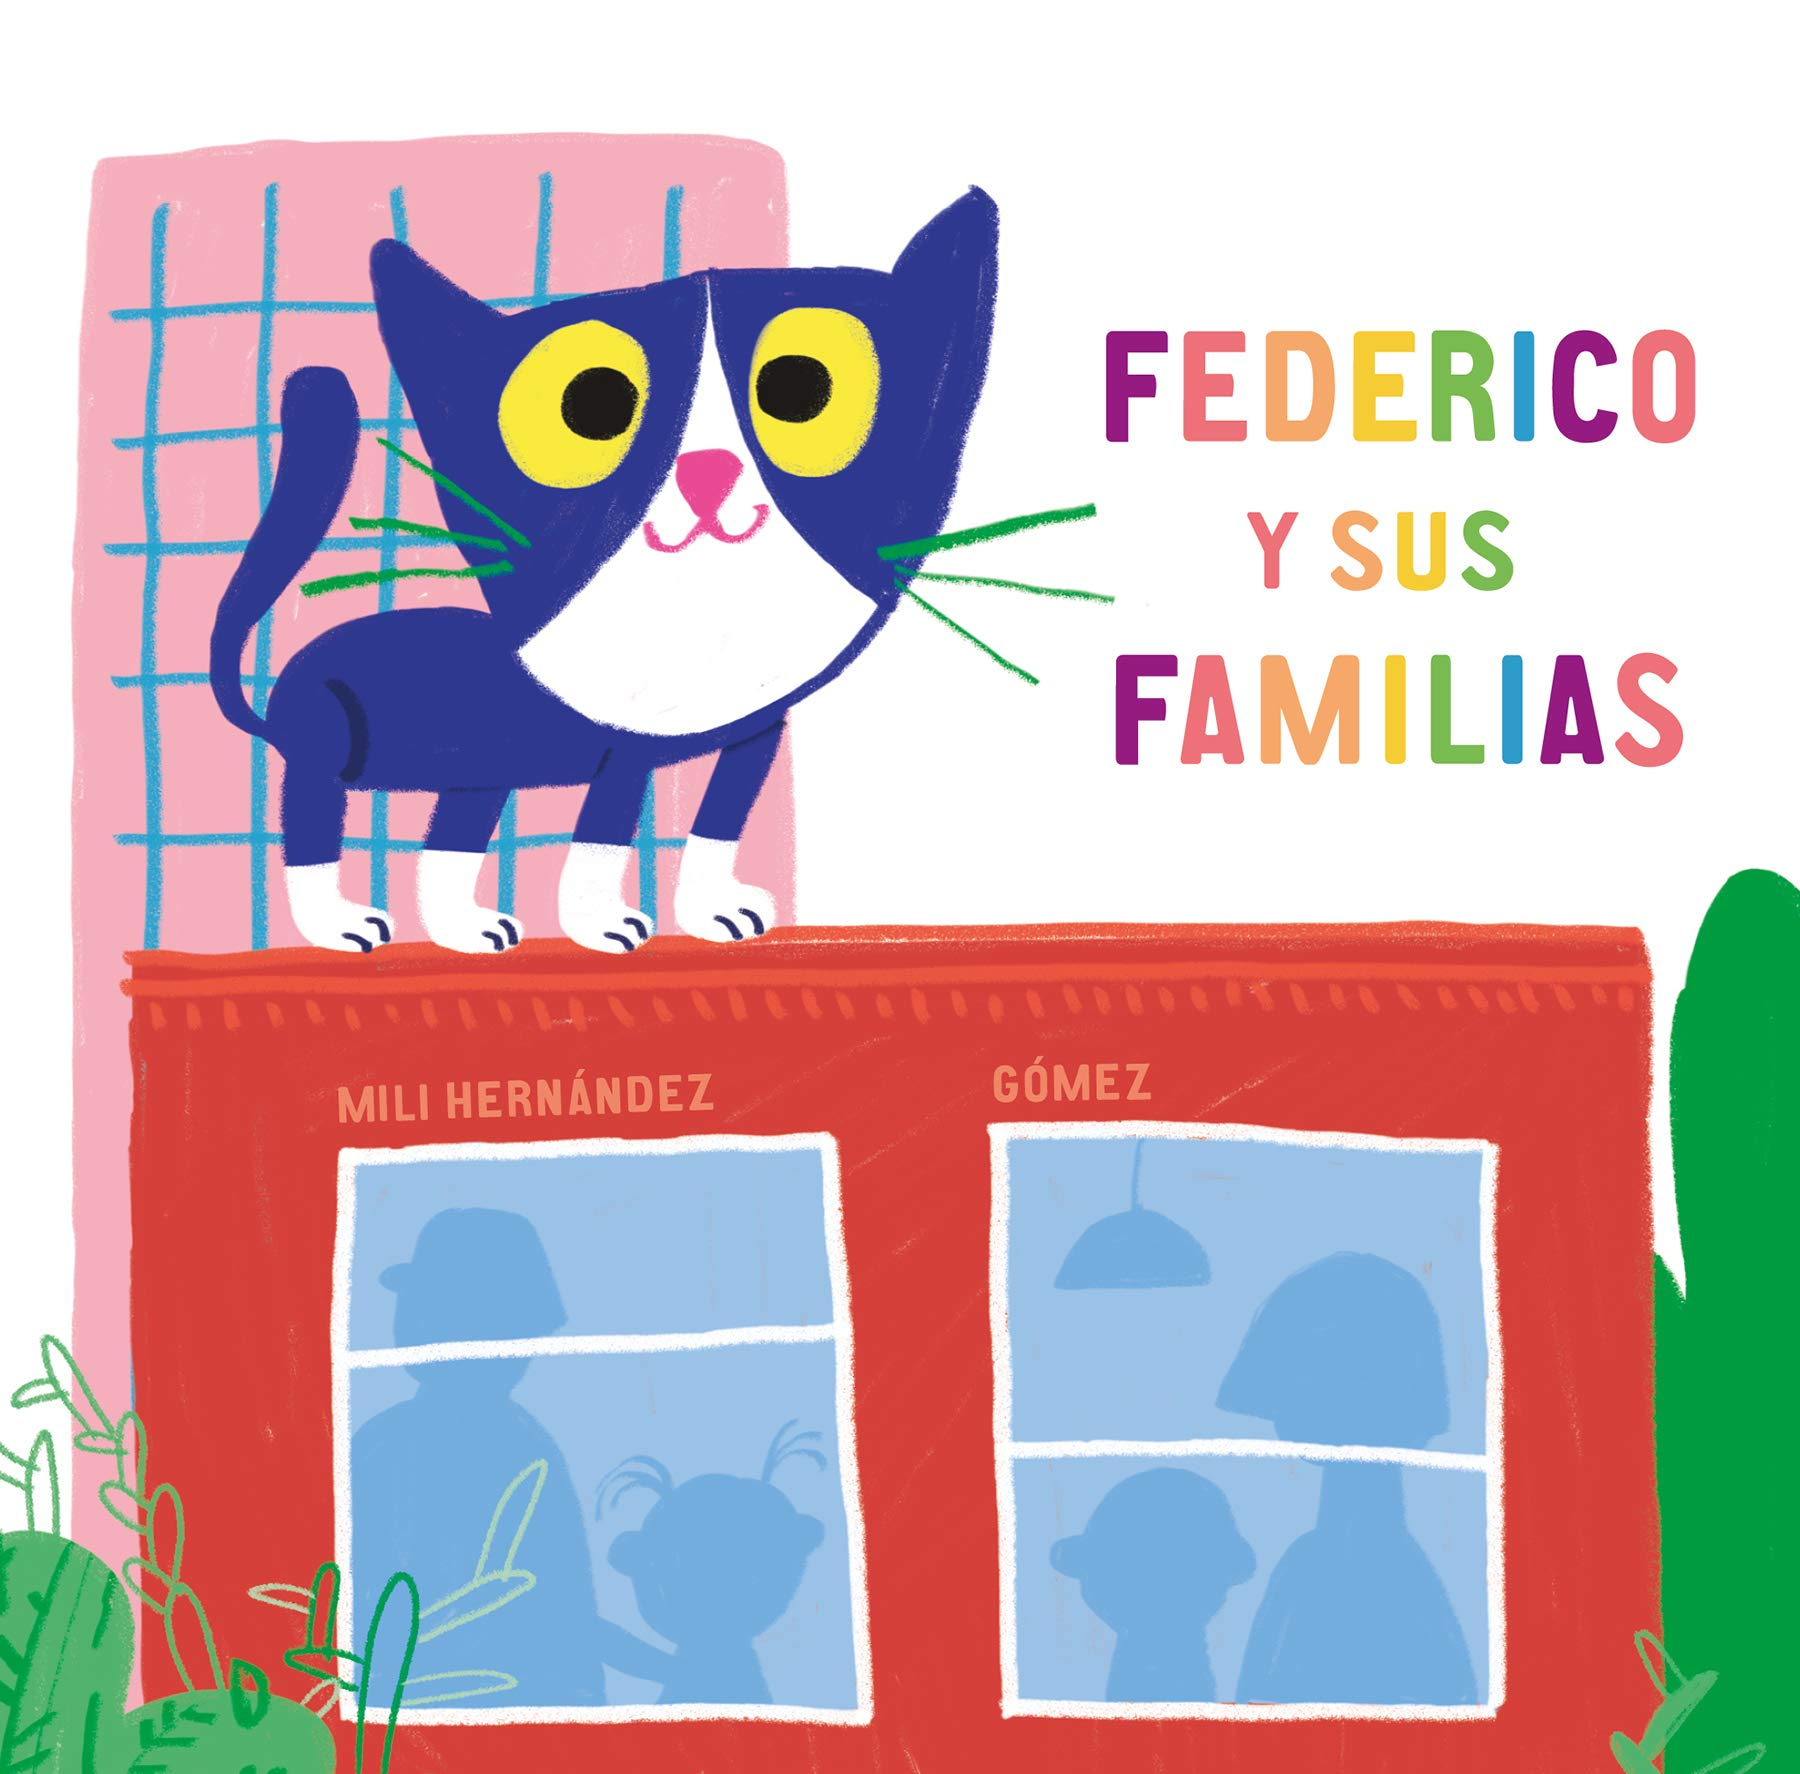 Federico y sus familias  Opens in new window